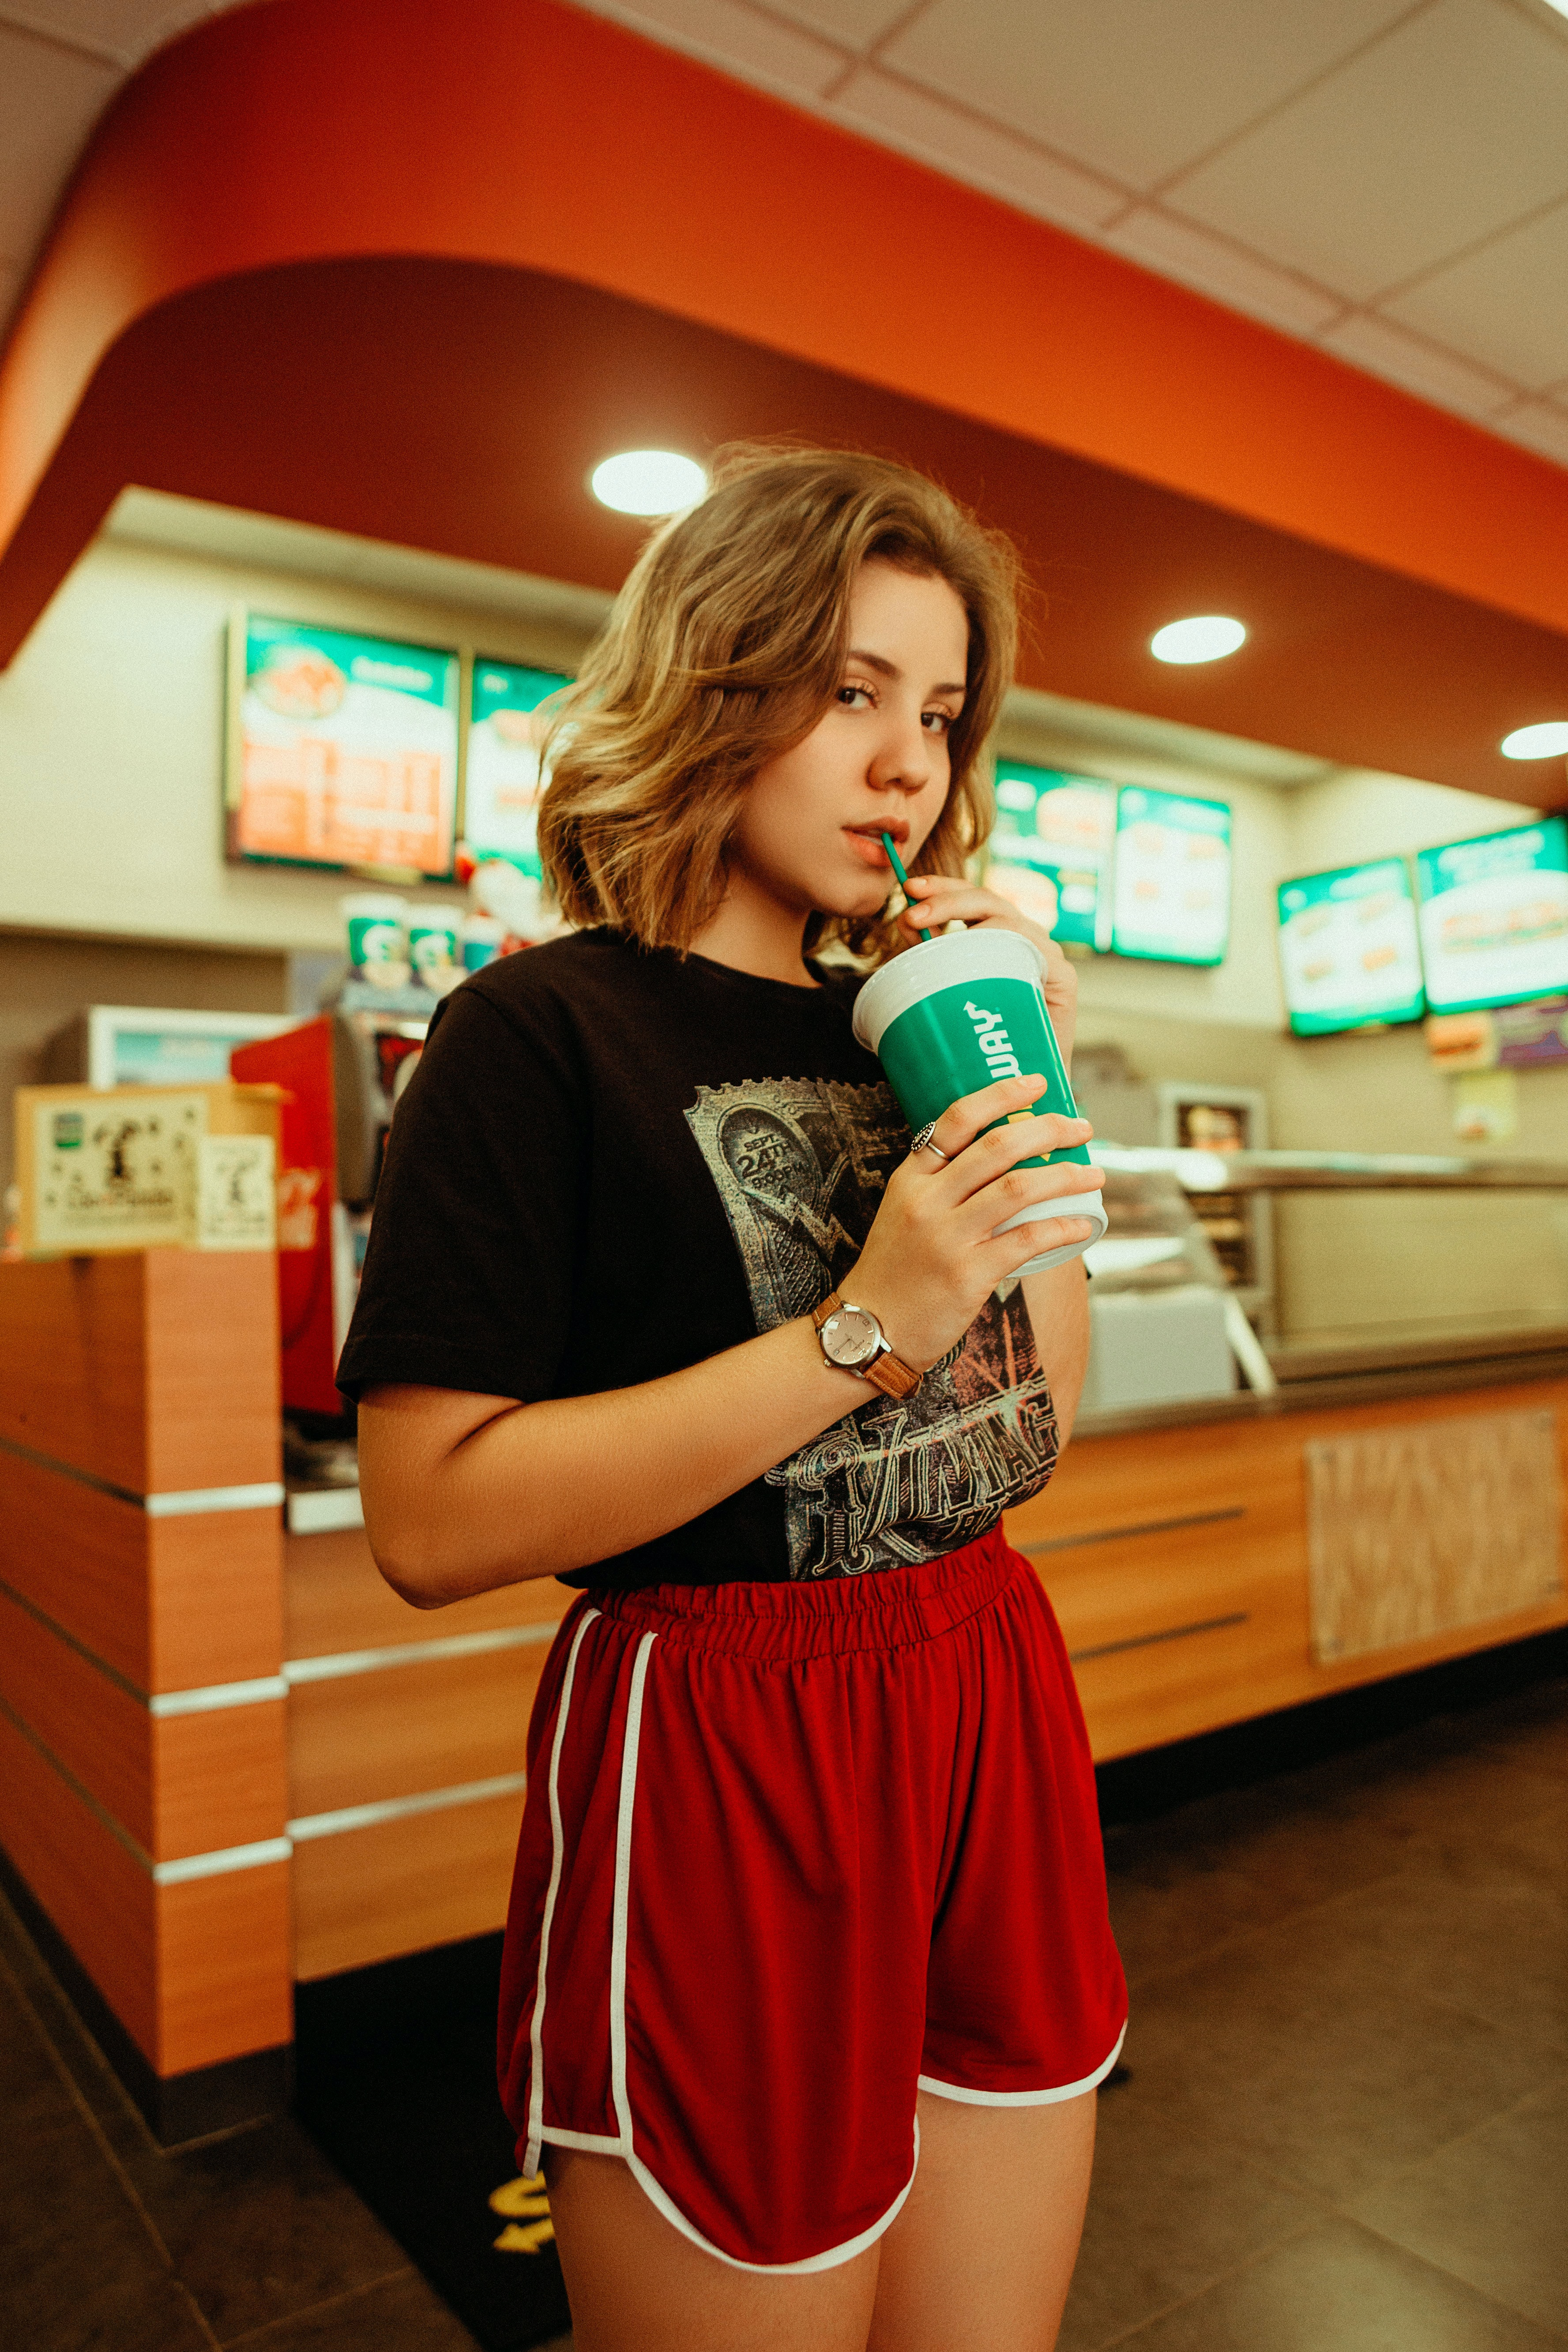 girl drinking plastic cup with straw